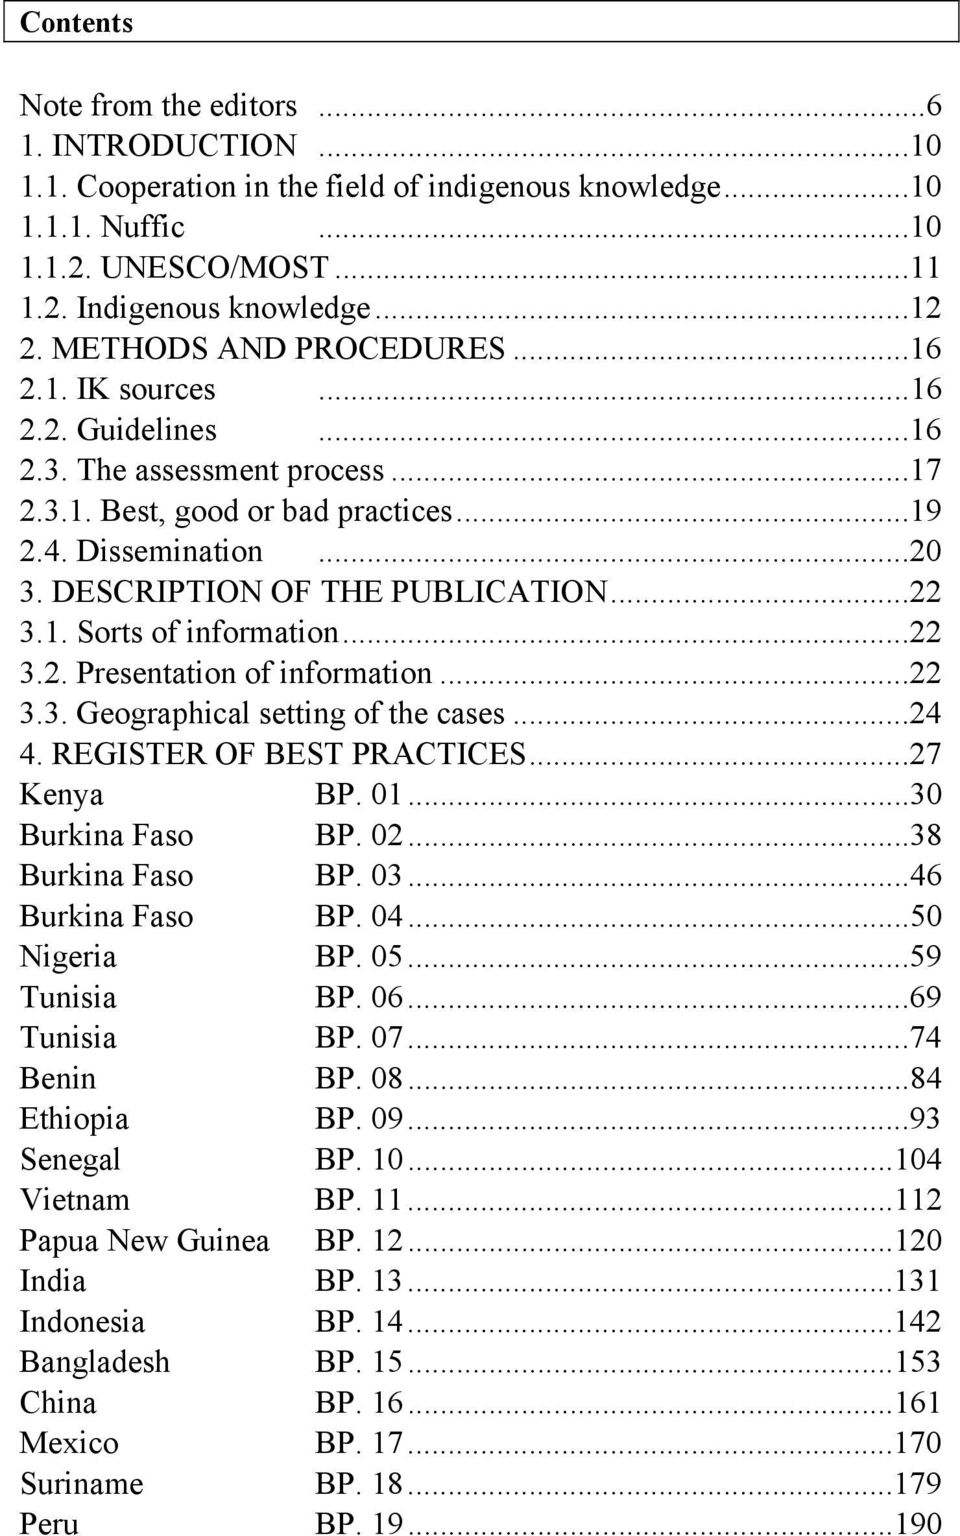 DESCRIPTION OF THE PUBLICATION...22 3.1. Sorts of information...22 3.2. Presentation of information...22 3.3. Geographical setting of the cases...24 4. REGISTER OF BEST PRACTICES...27 Kenya BP. 01.